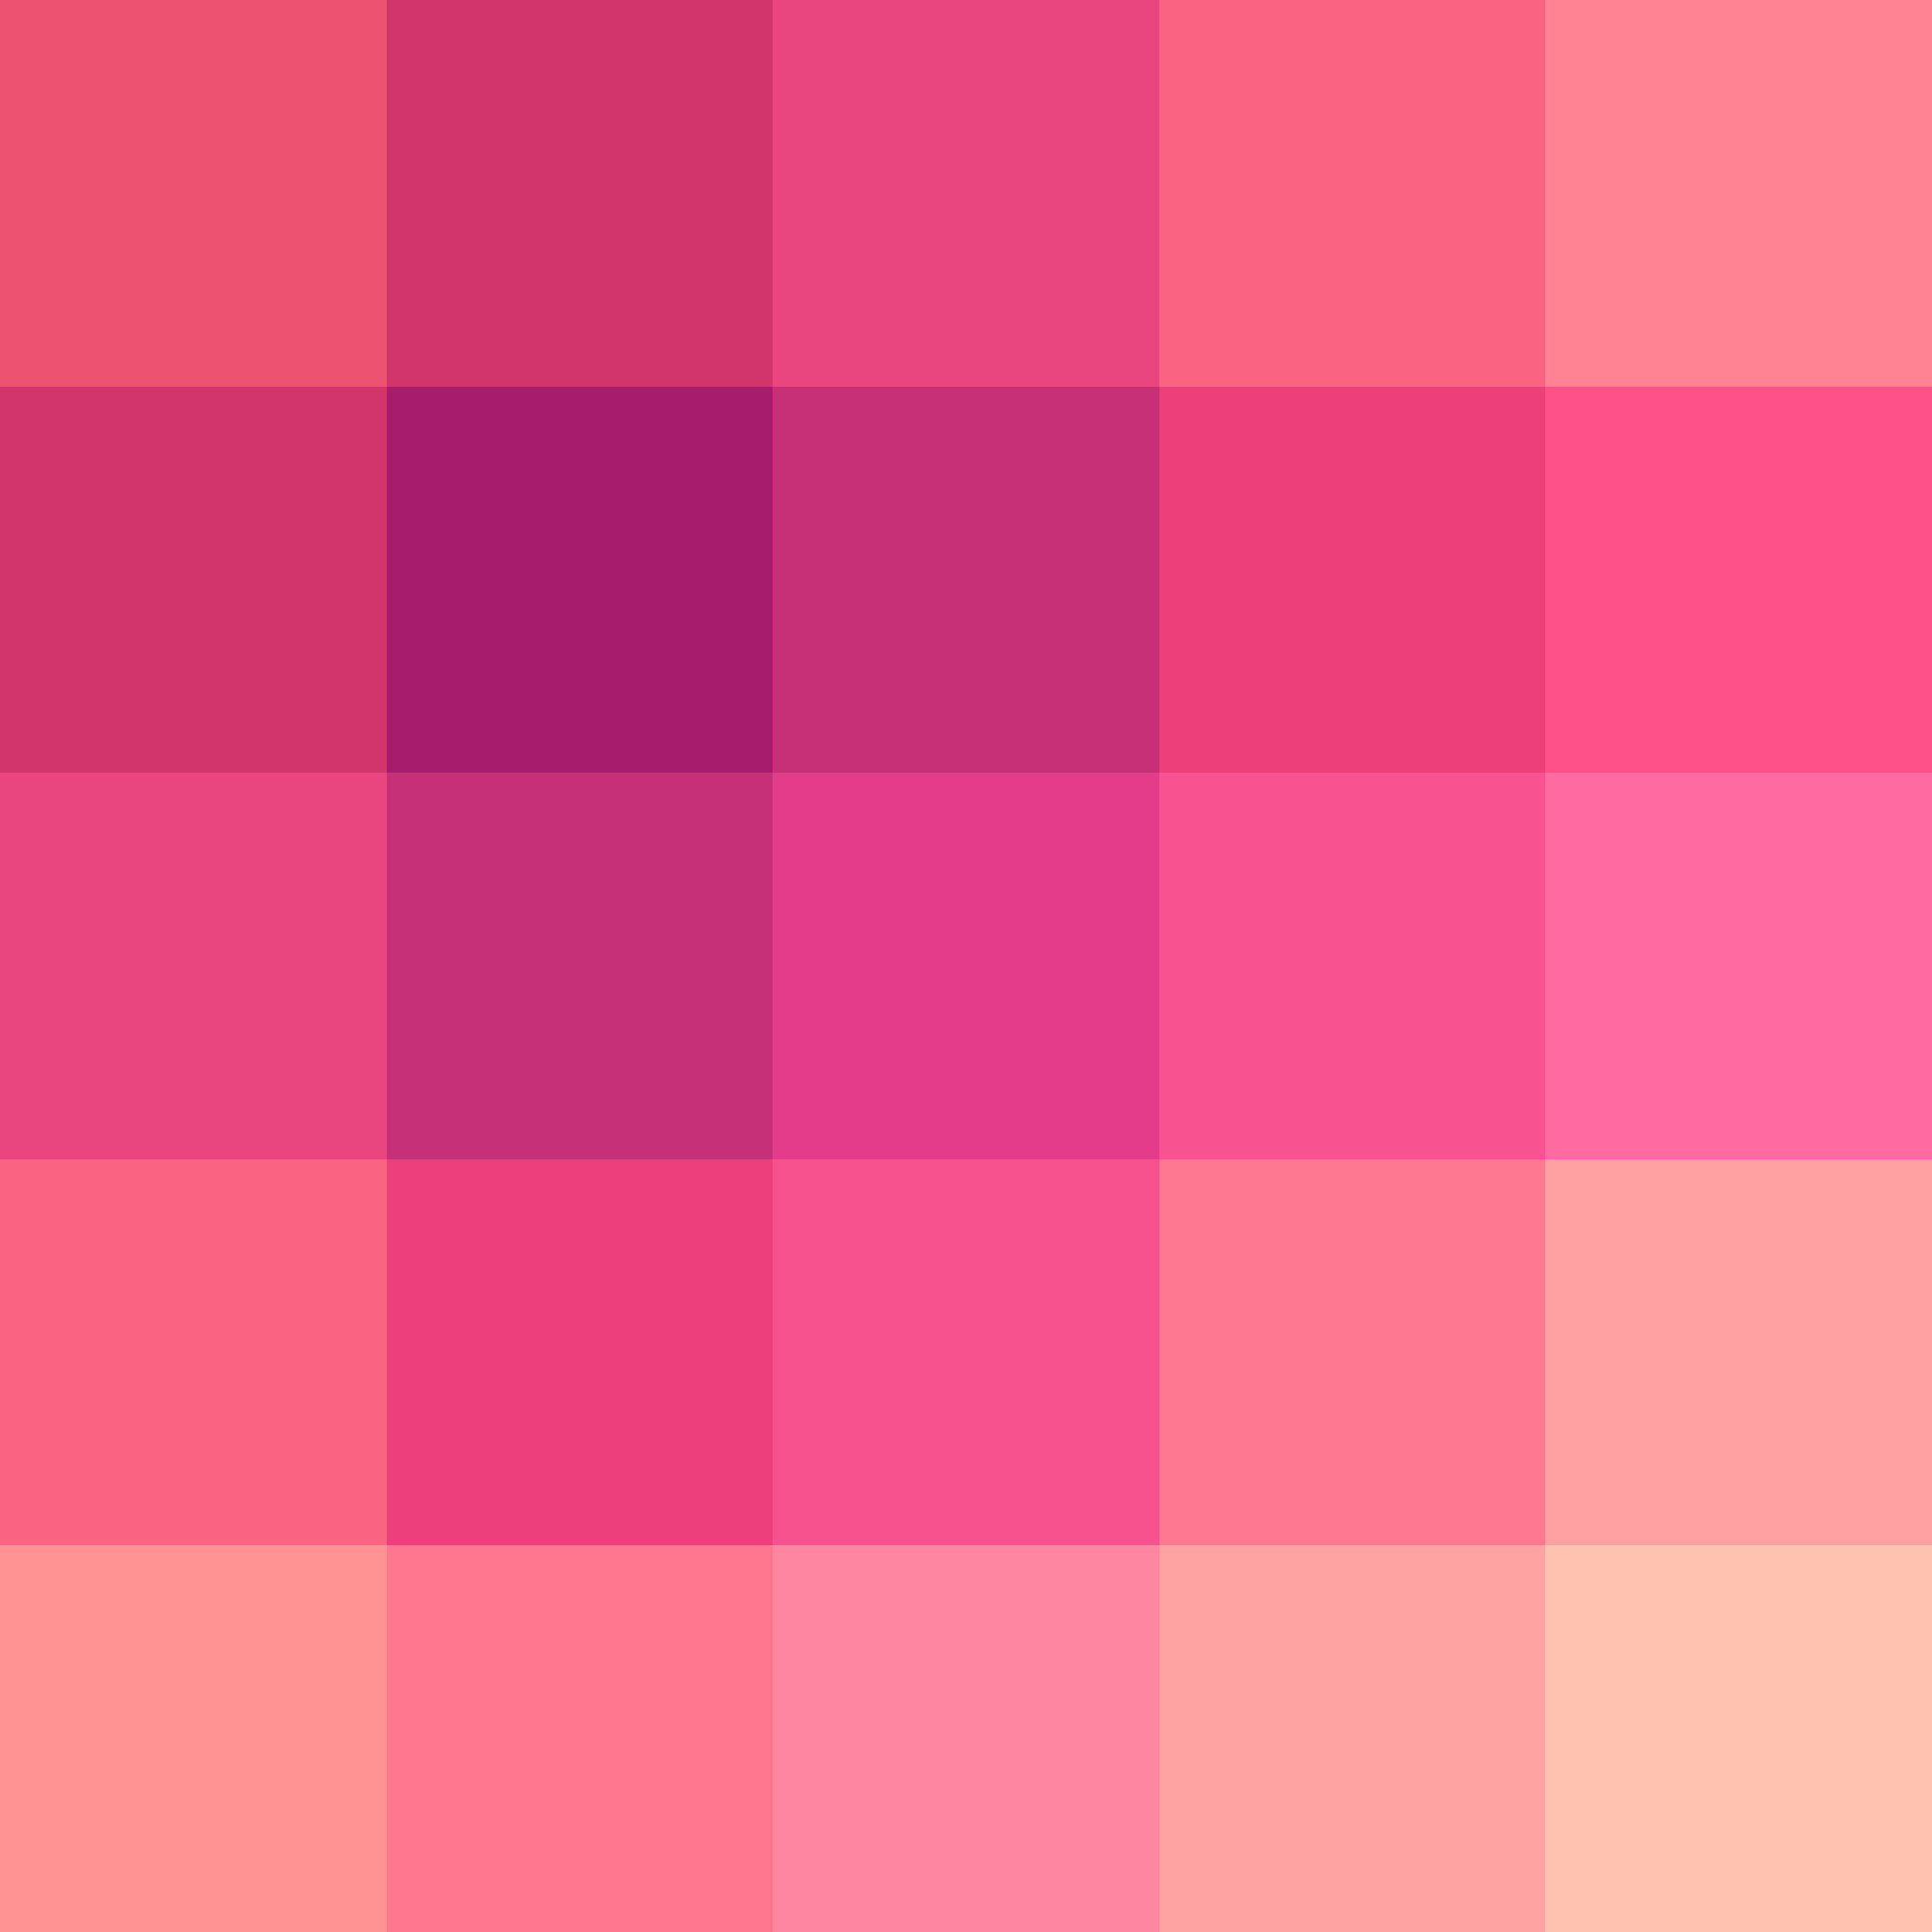 Square Pink. Tap to see more girly pink wallpapers for iPhone, iPad &  Android